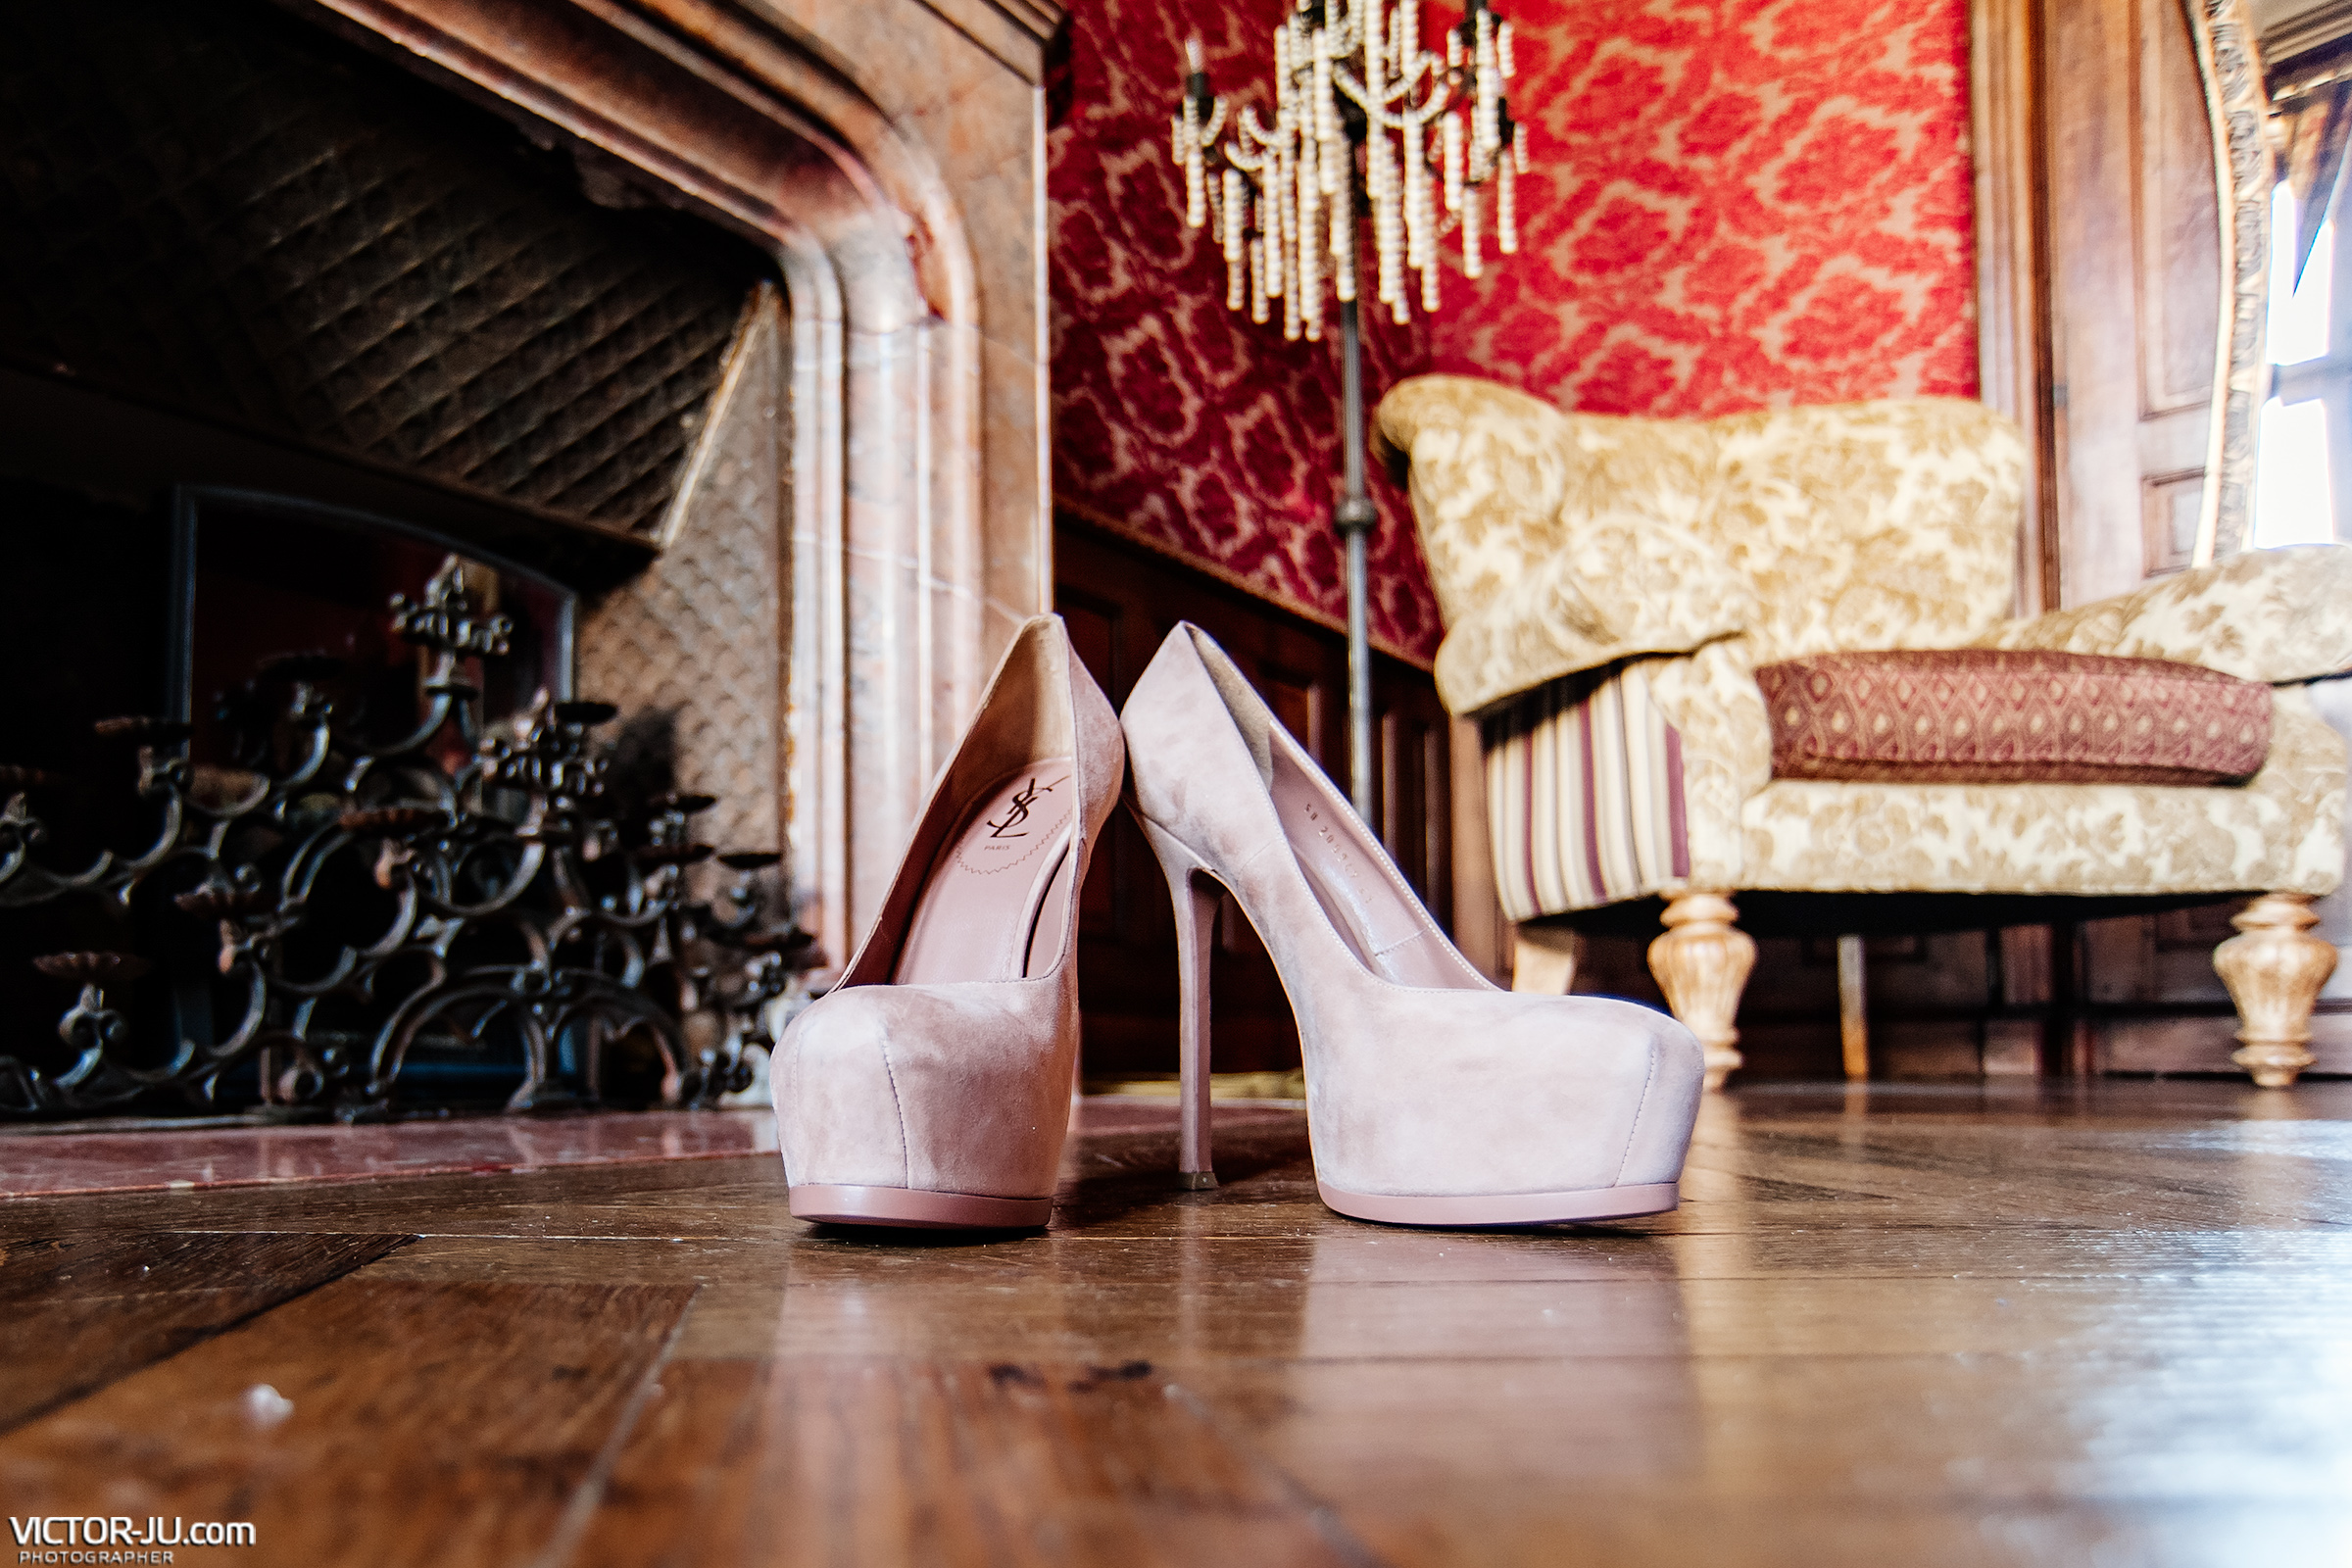 Shoes of the bride at a wedding in France